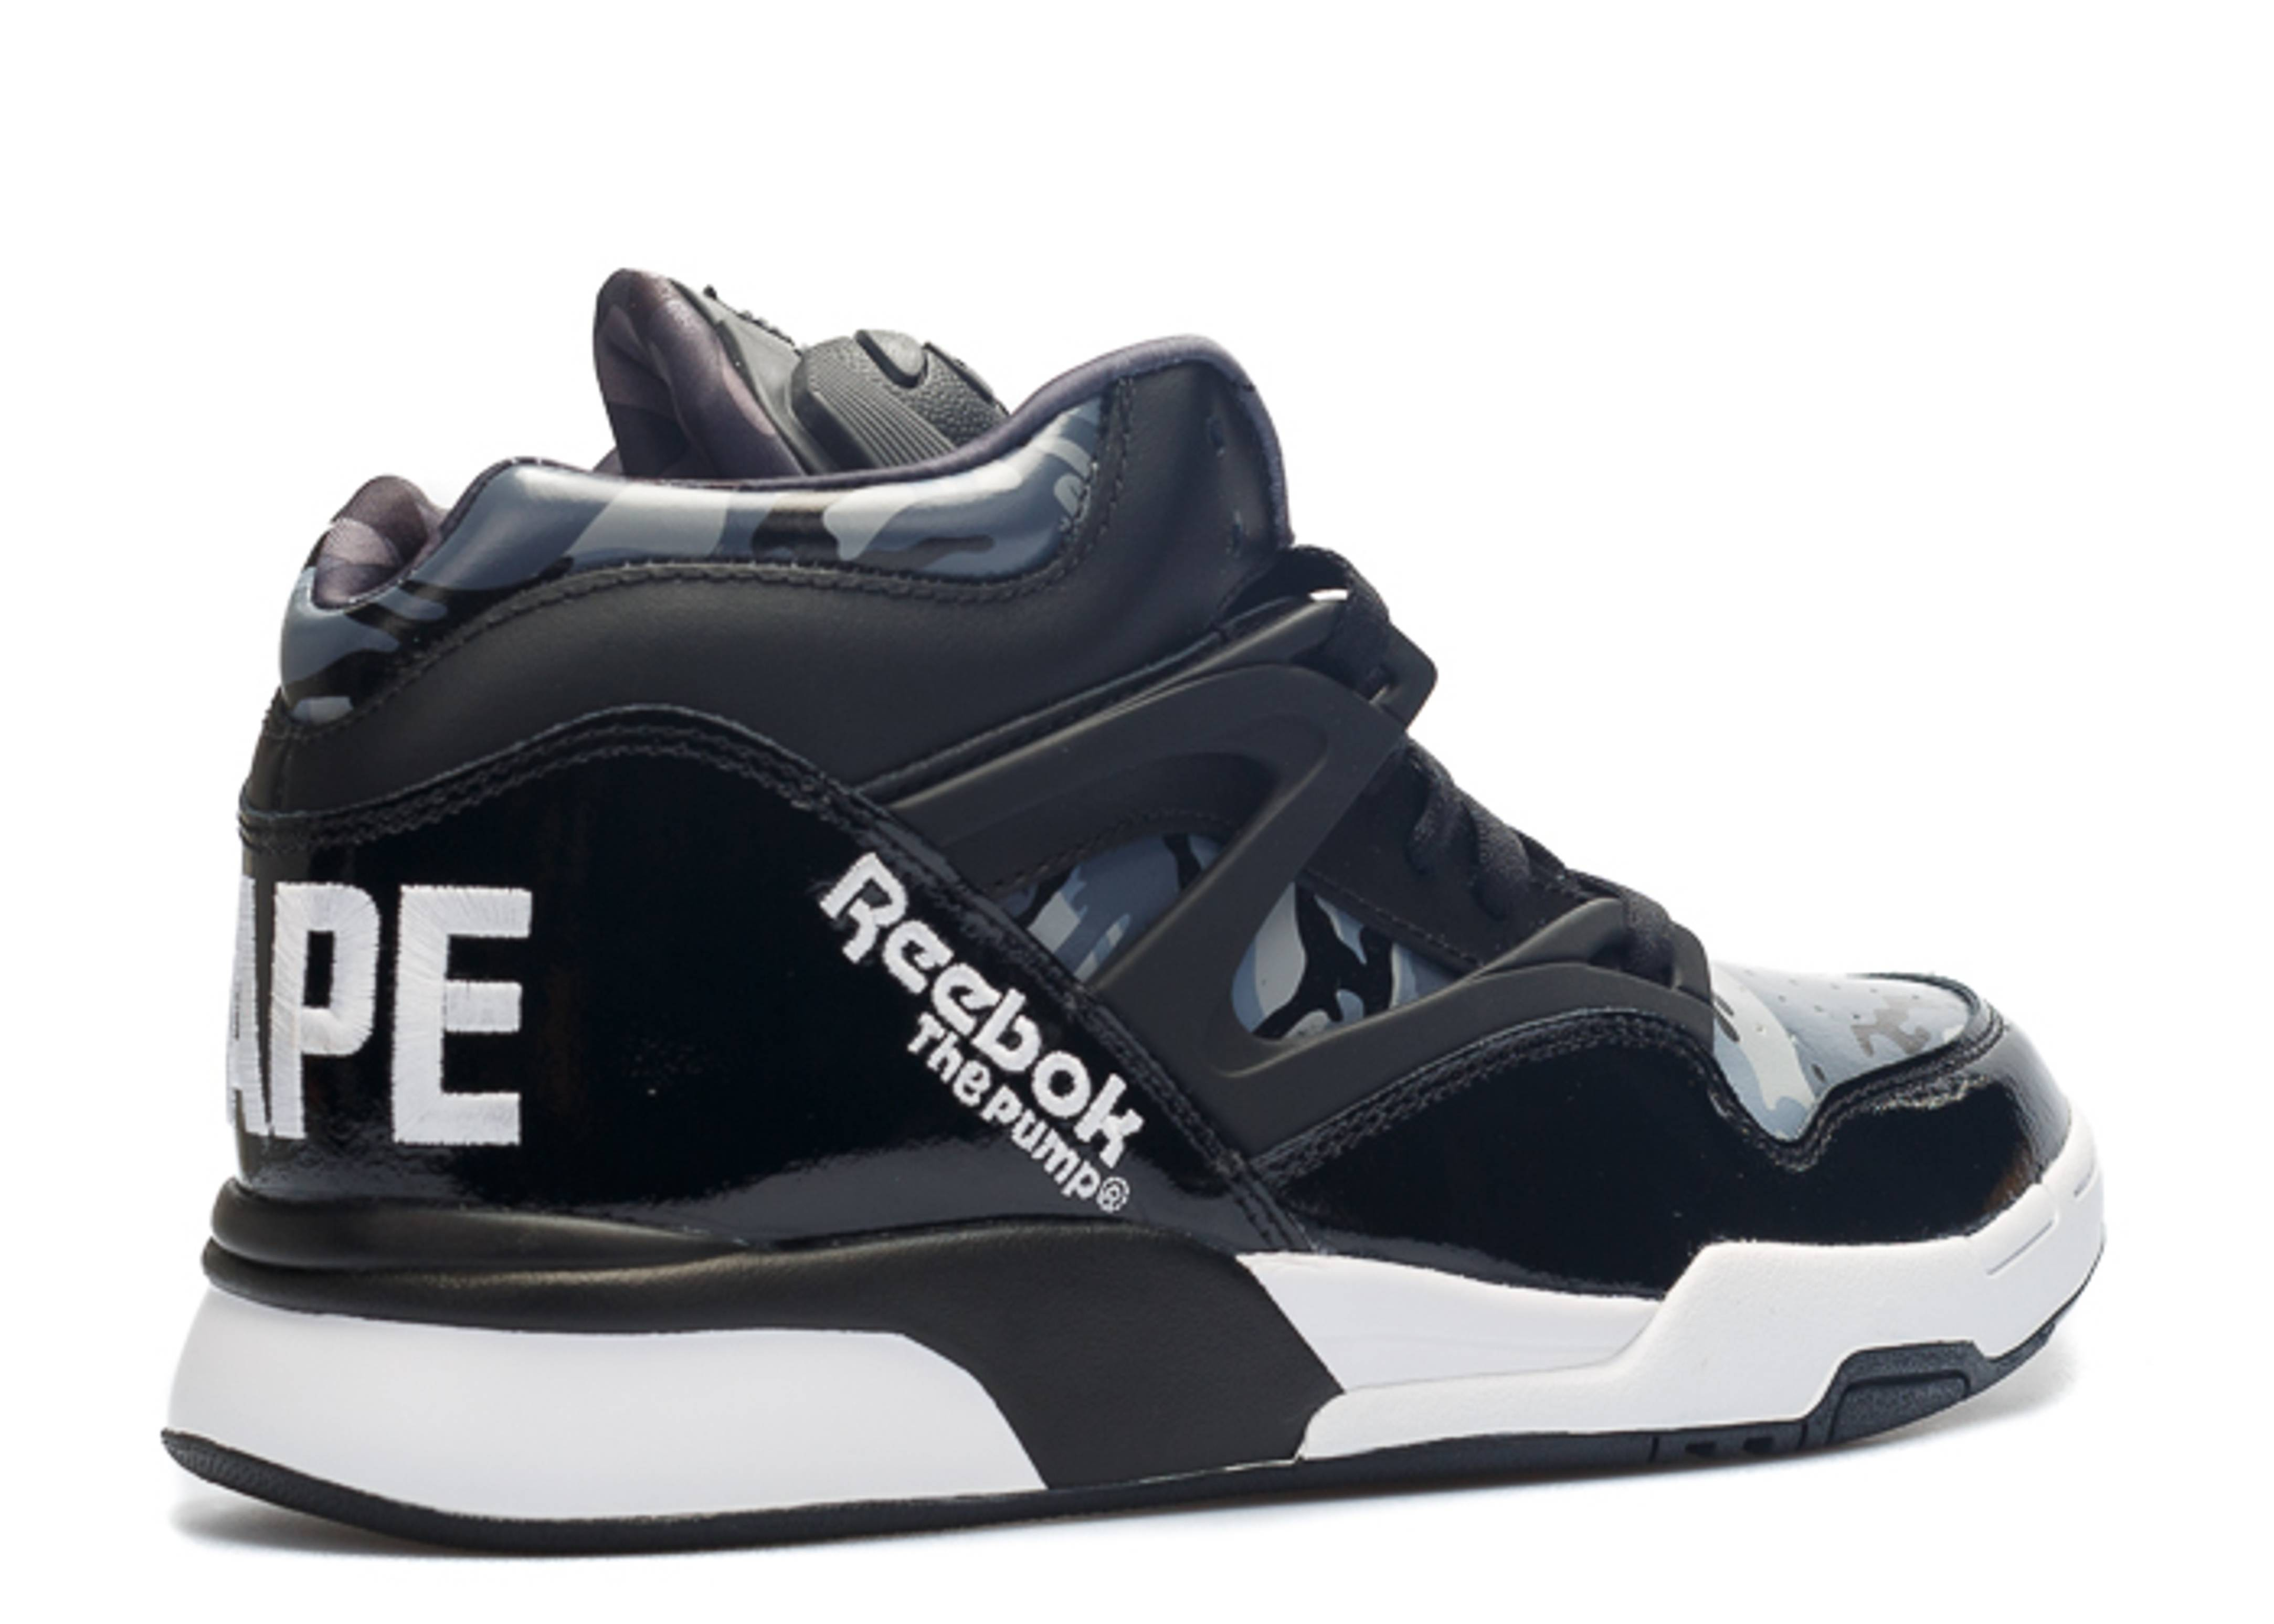 acd27bde585 Buy reebok pump up basketball shoes   OFF52% Discounted